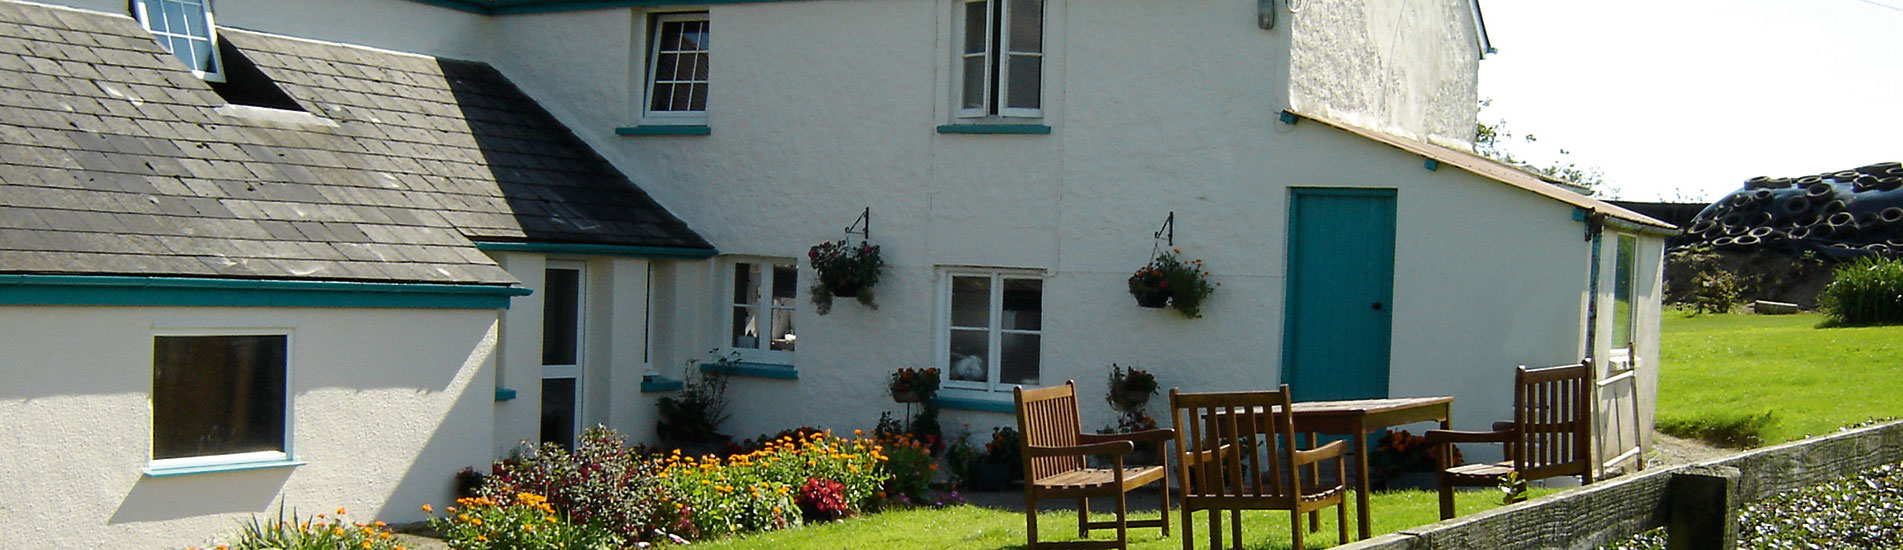 Kimbland Farm, B&B in North Devon